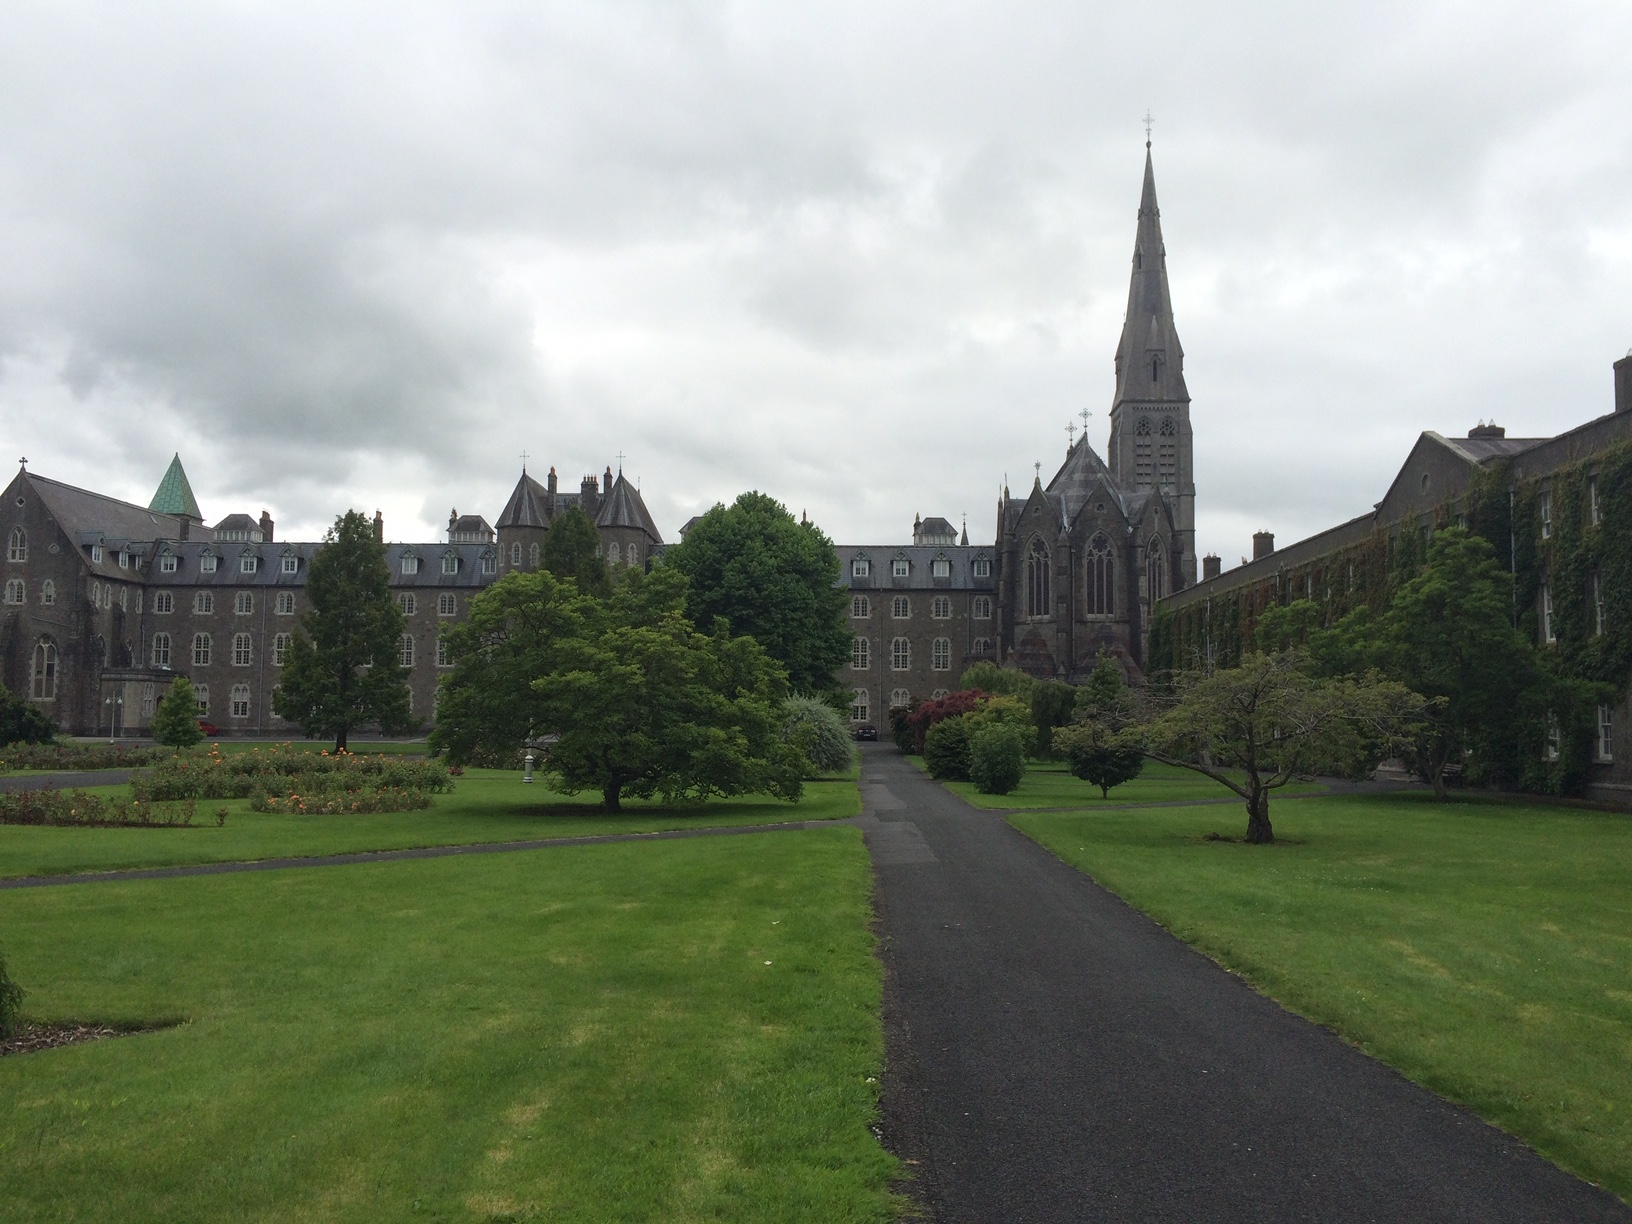 Marian Crowley-Henry | Maynooth University